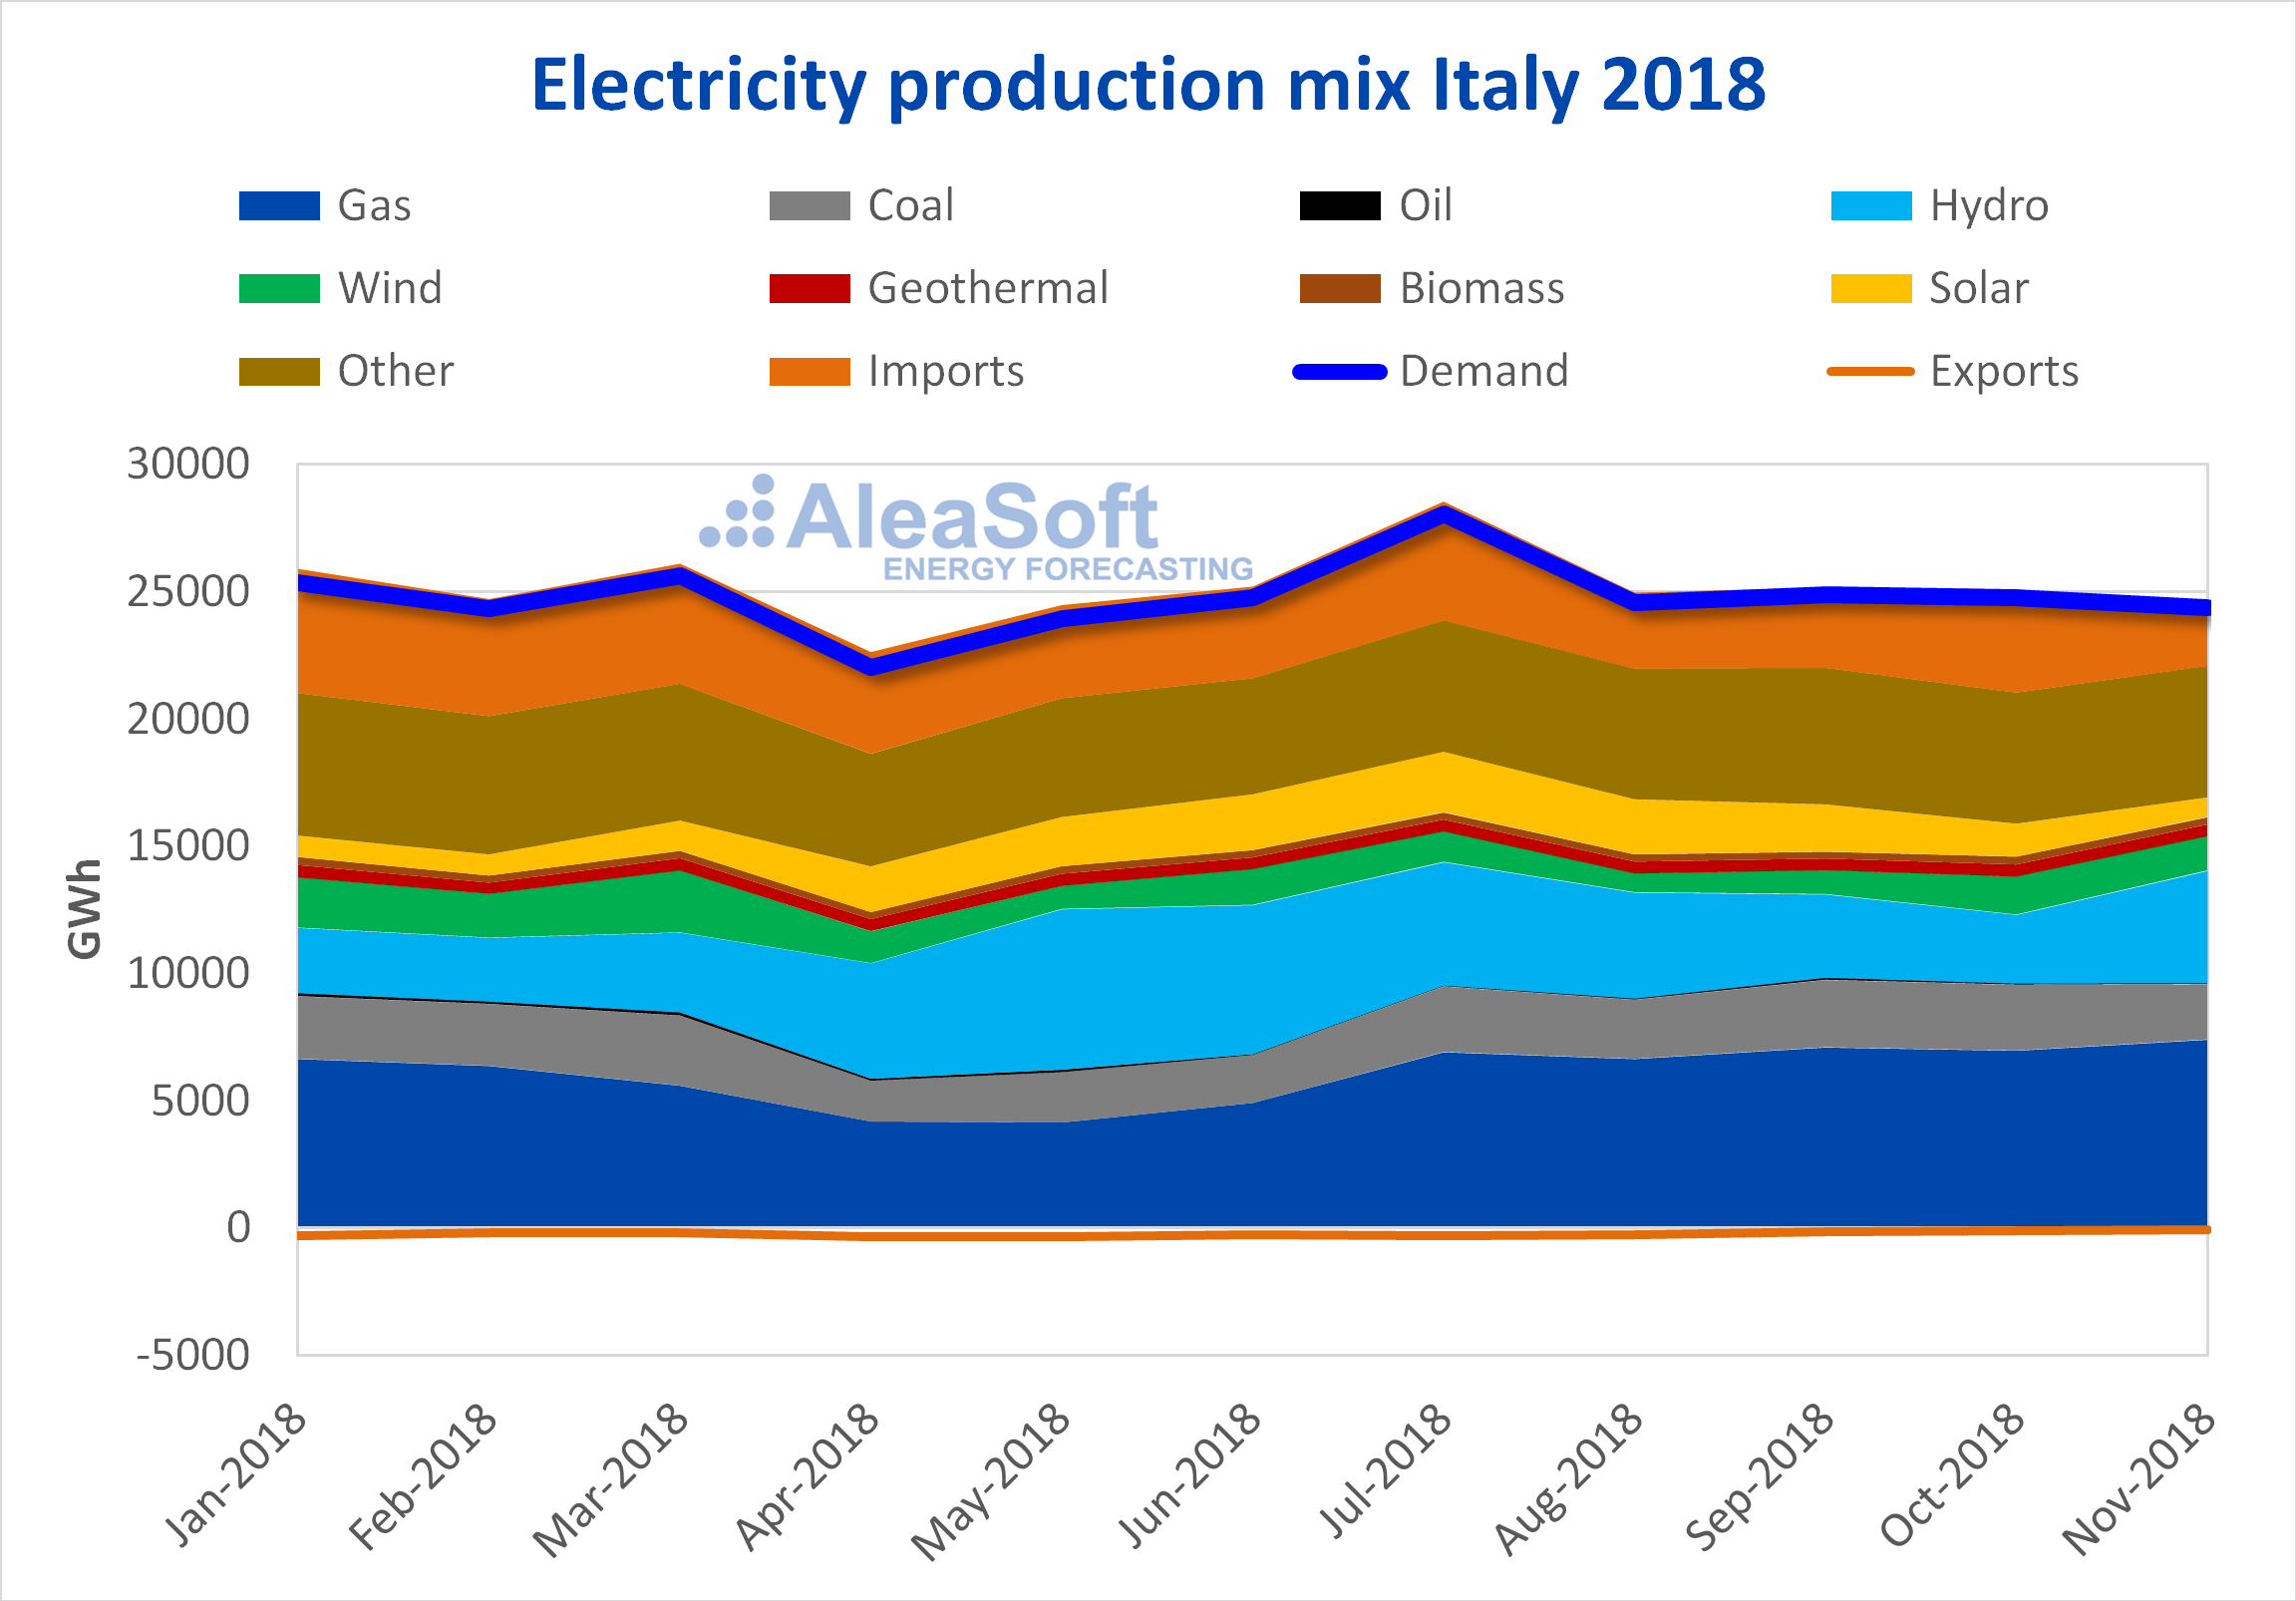 AleaSoft - Italy electricity production mix